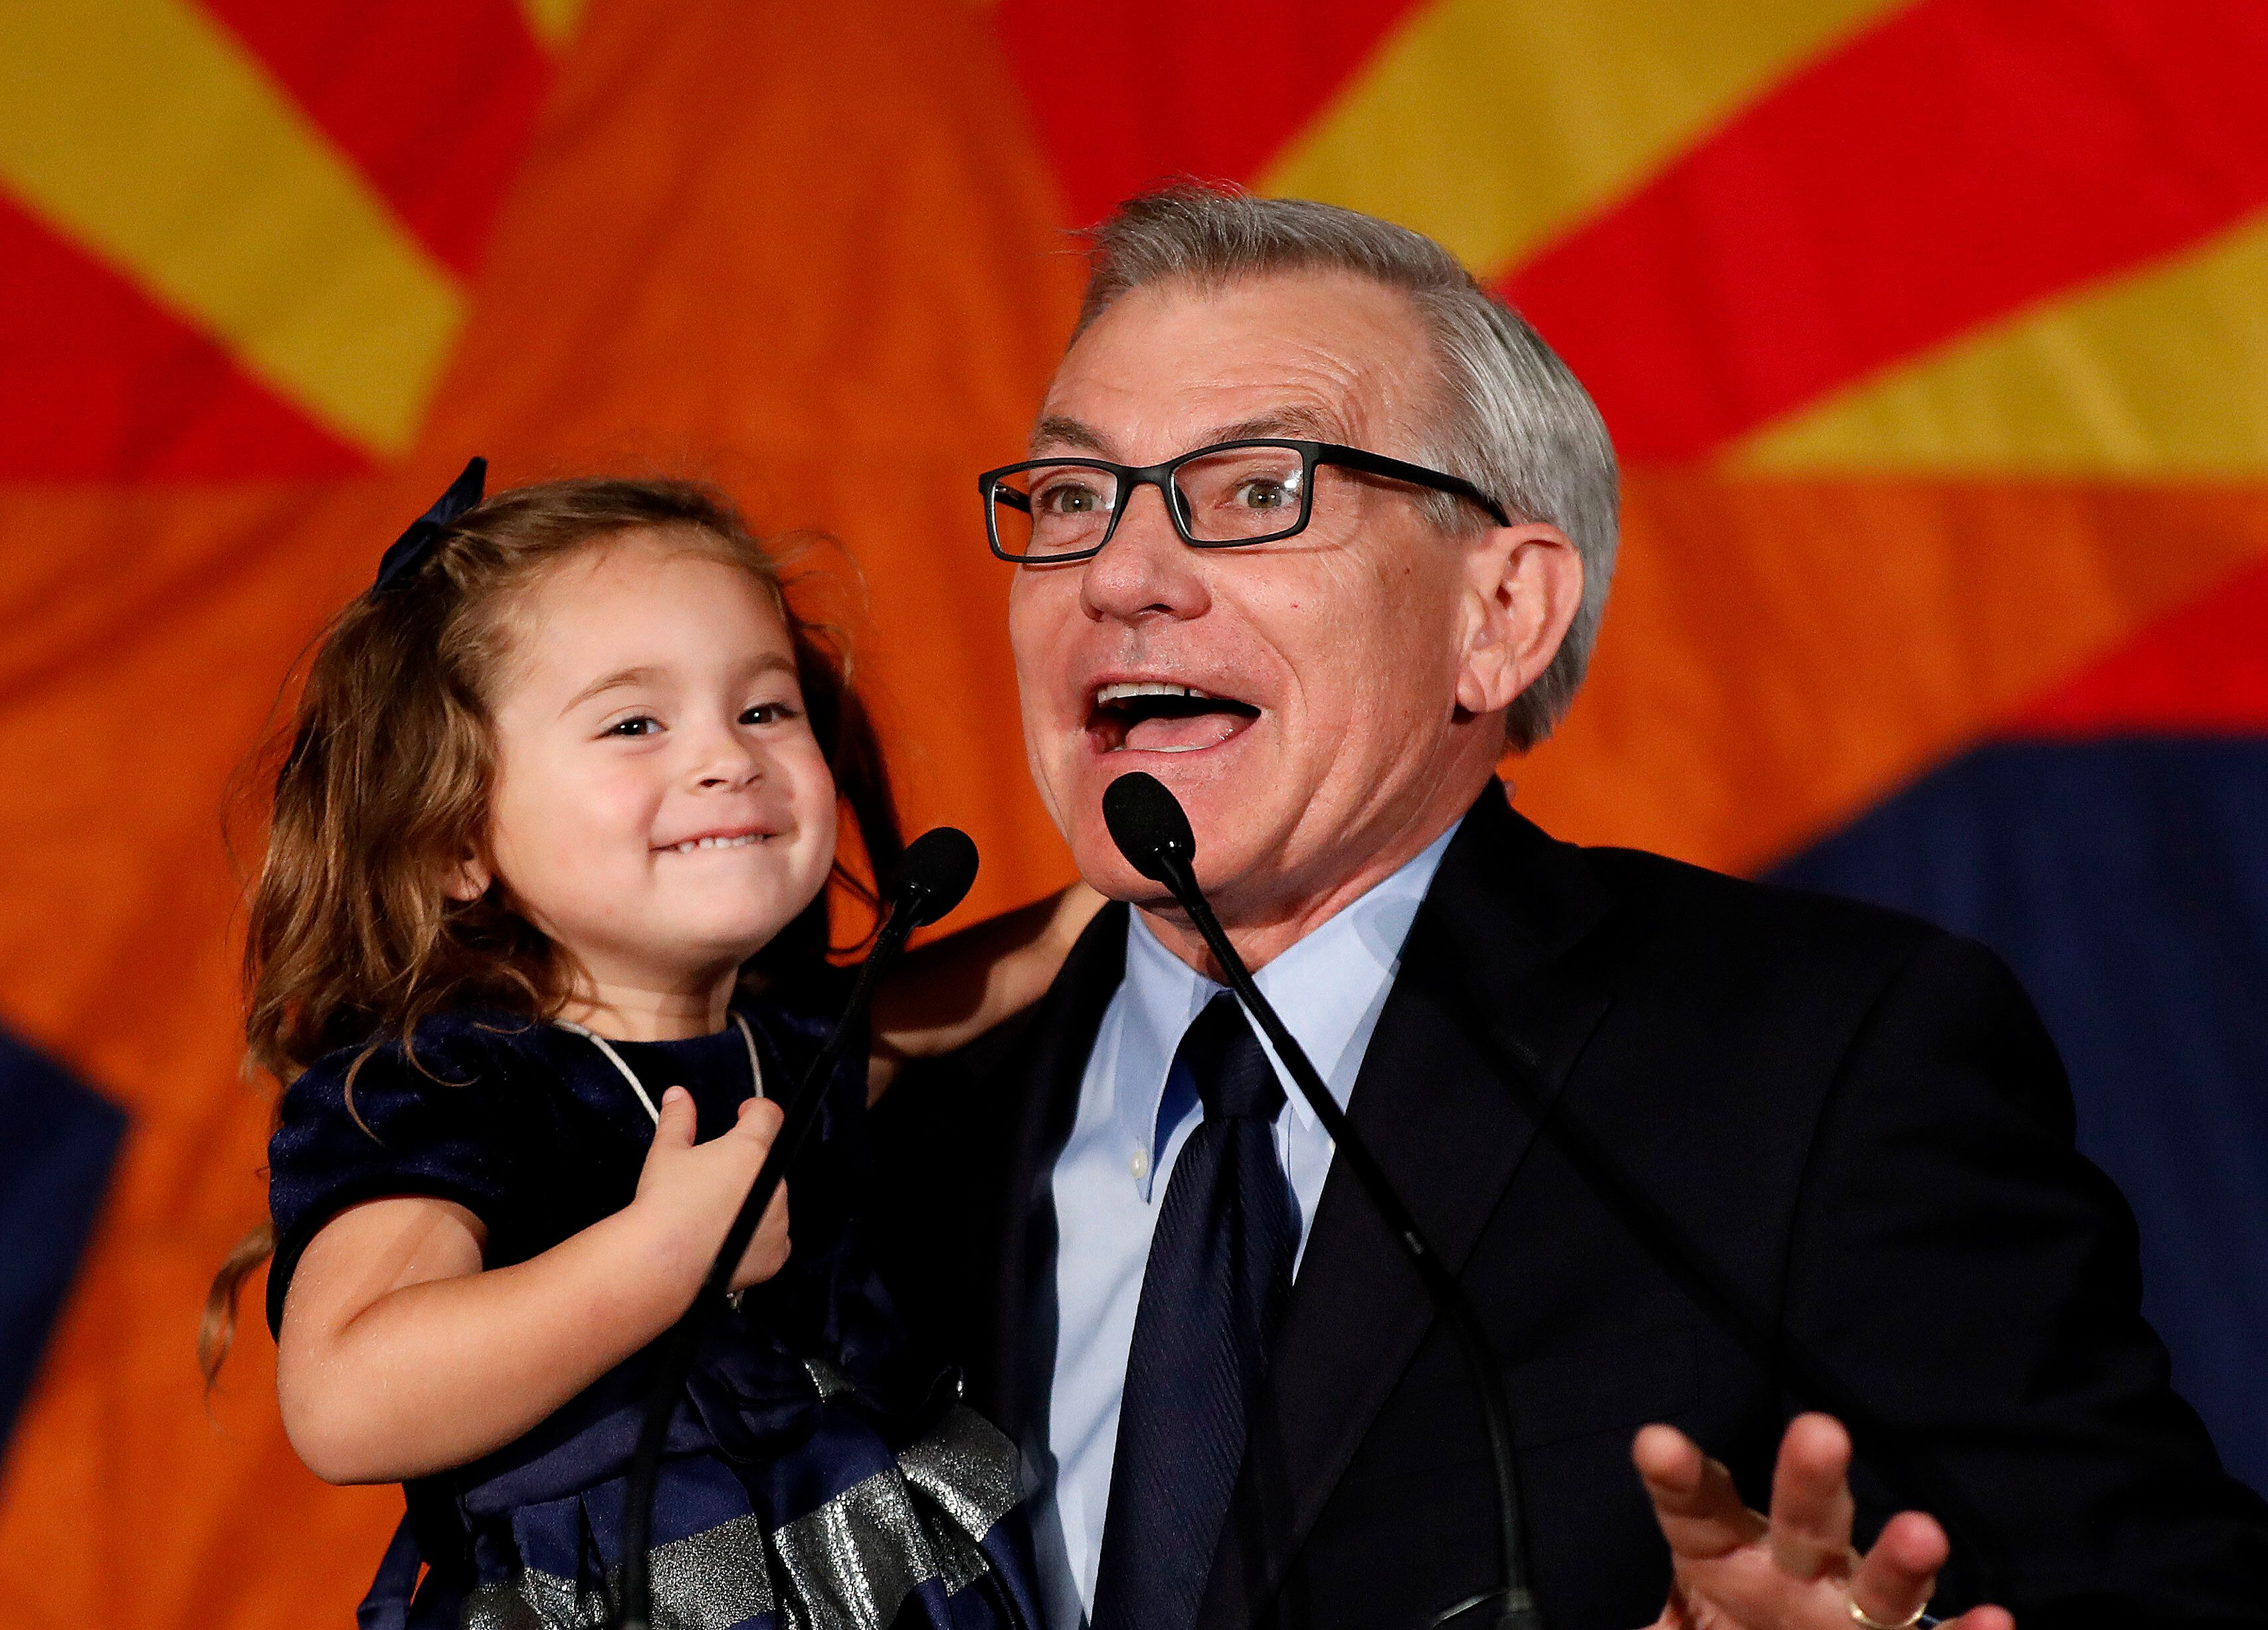 Rep. David Schweikert (R-Ariz.), with his daughter Olivia, speaking to supporters on election night in 2018. Democrats, who h